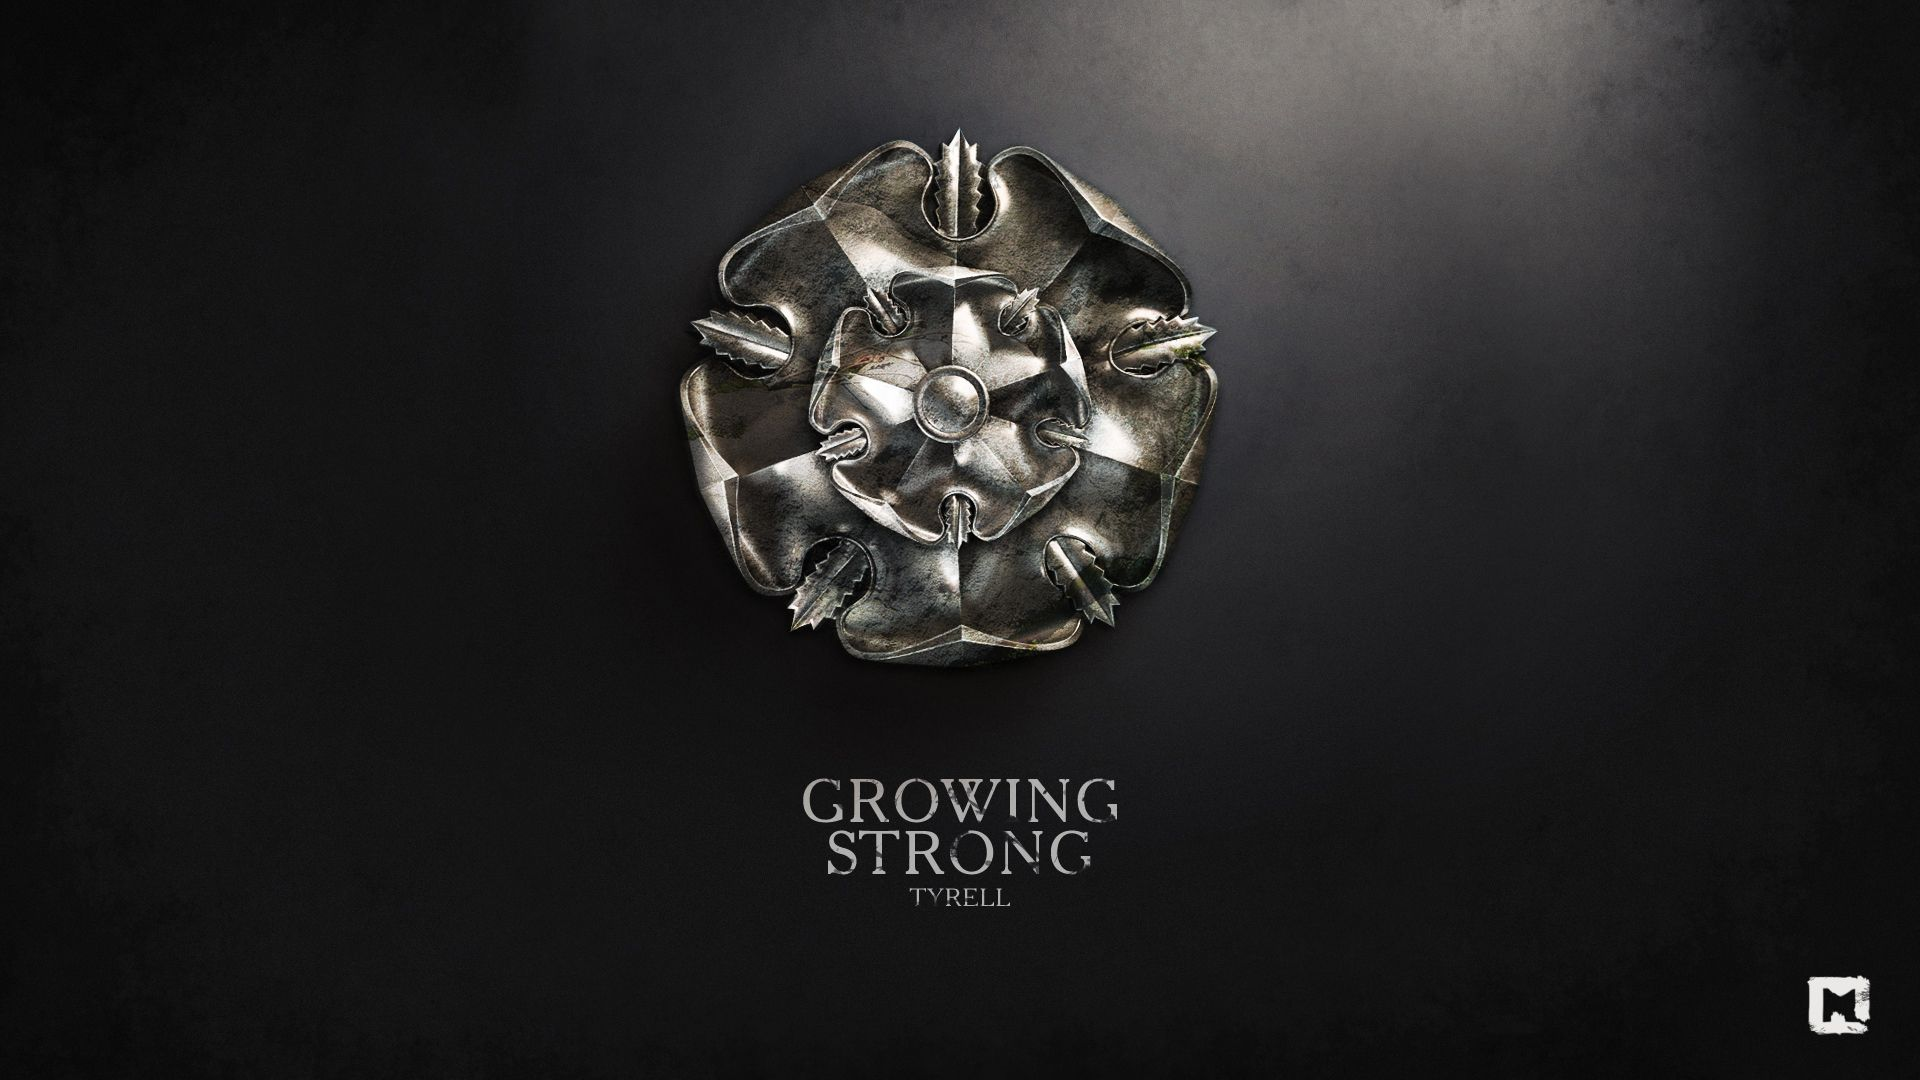 Game of Thrones Sigil House Tyrell